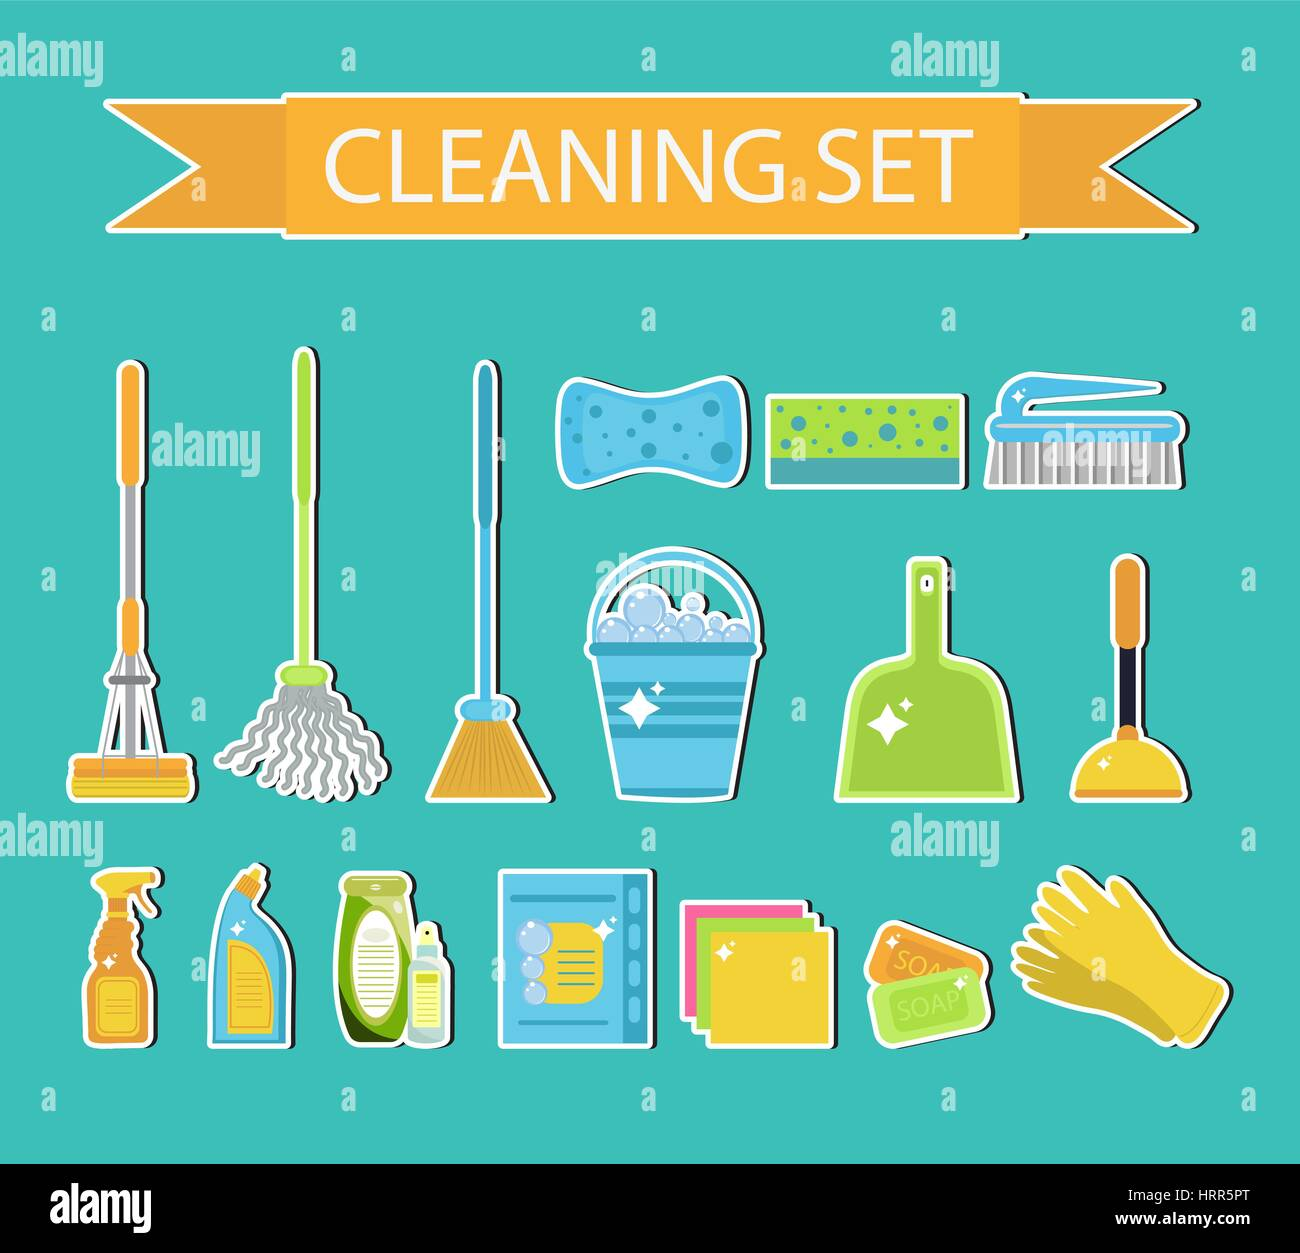 Set of icons for cleaning tools. House cleaning staff. Flat design style. Cleaning sticker. Cleaning design elements. - Stock Vector